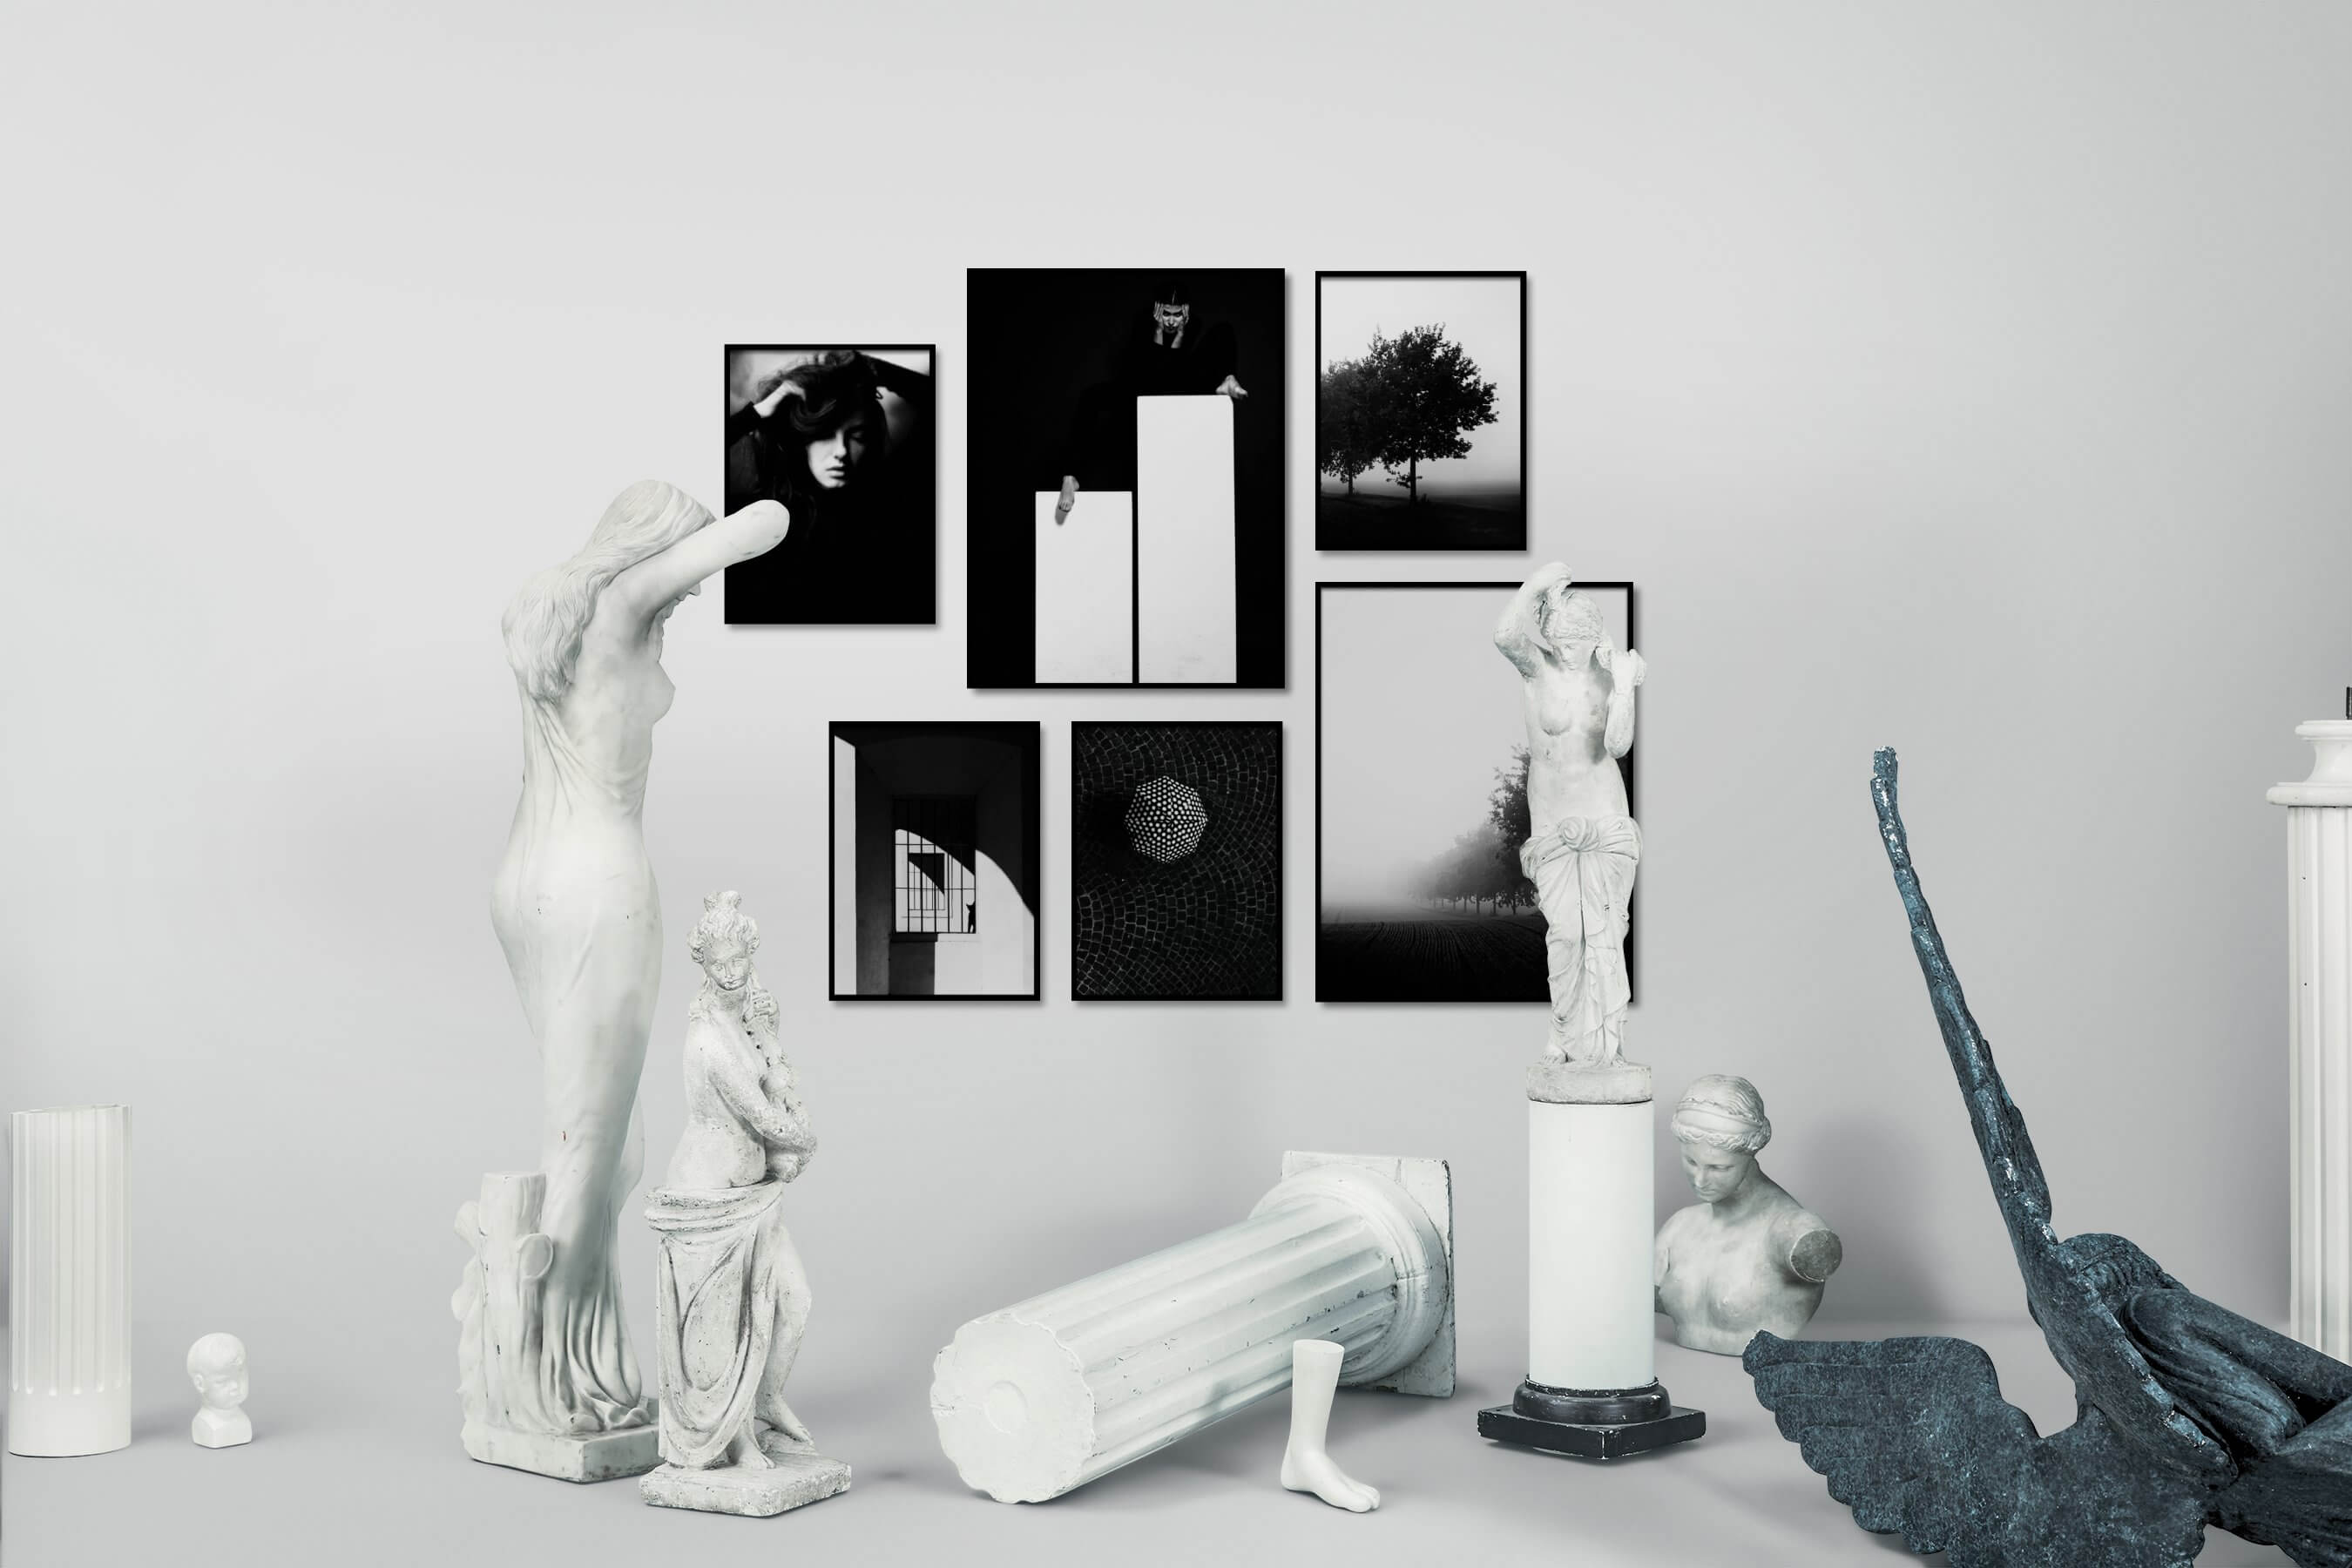 Gallery wall idea with six framed pictures arranged on a wall depicting Fashion & Beauty, Black & White, Dark Tones, For the Minimalist, Animals, City Life, and Country Life